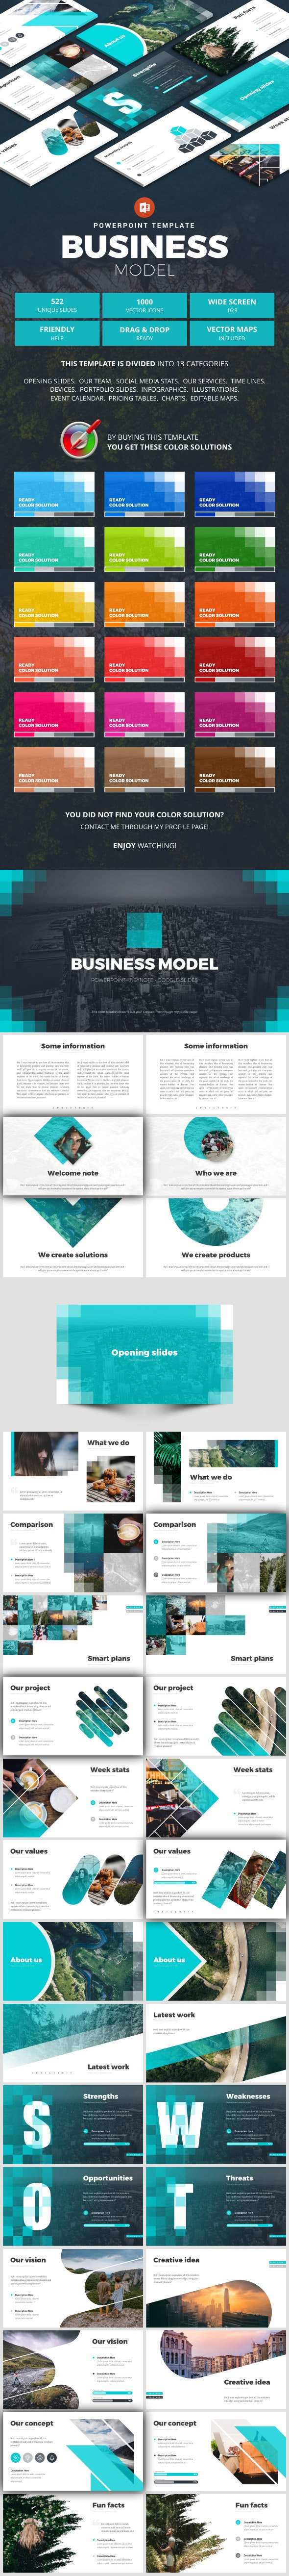 Business Template - Business PowerPoint Templates